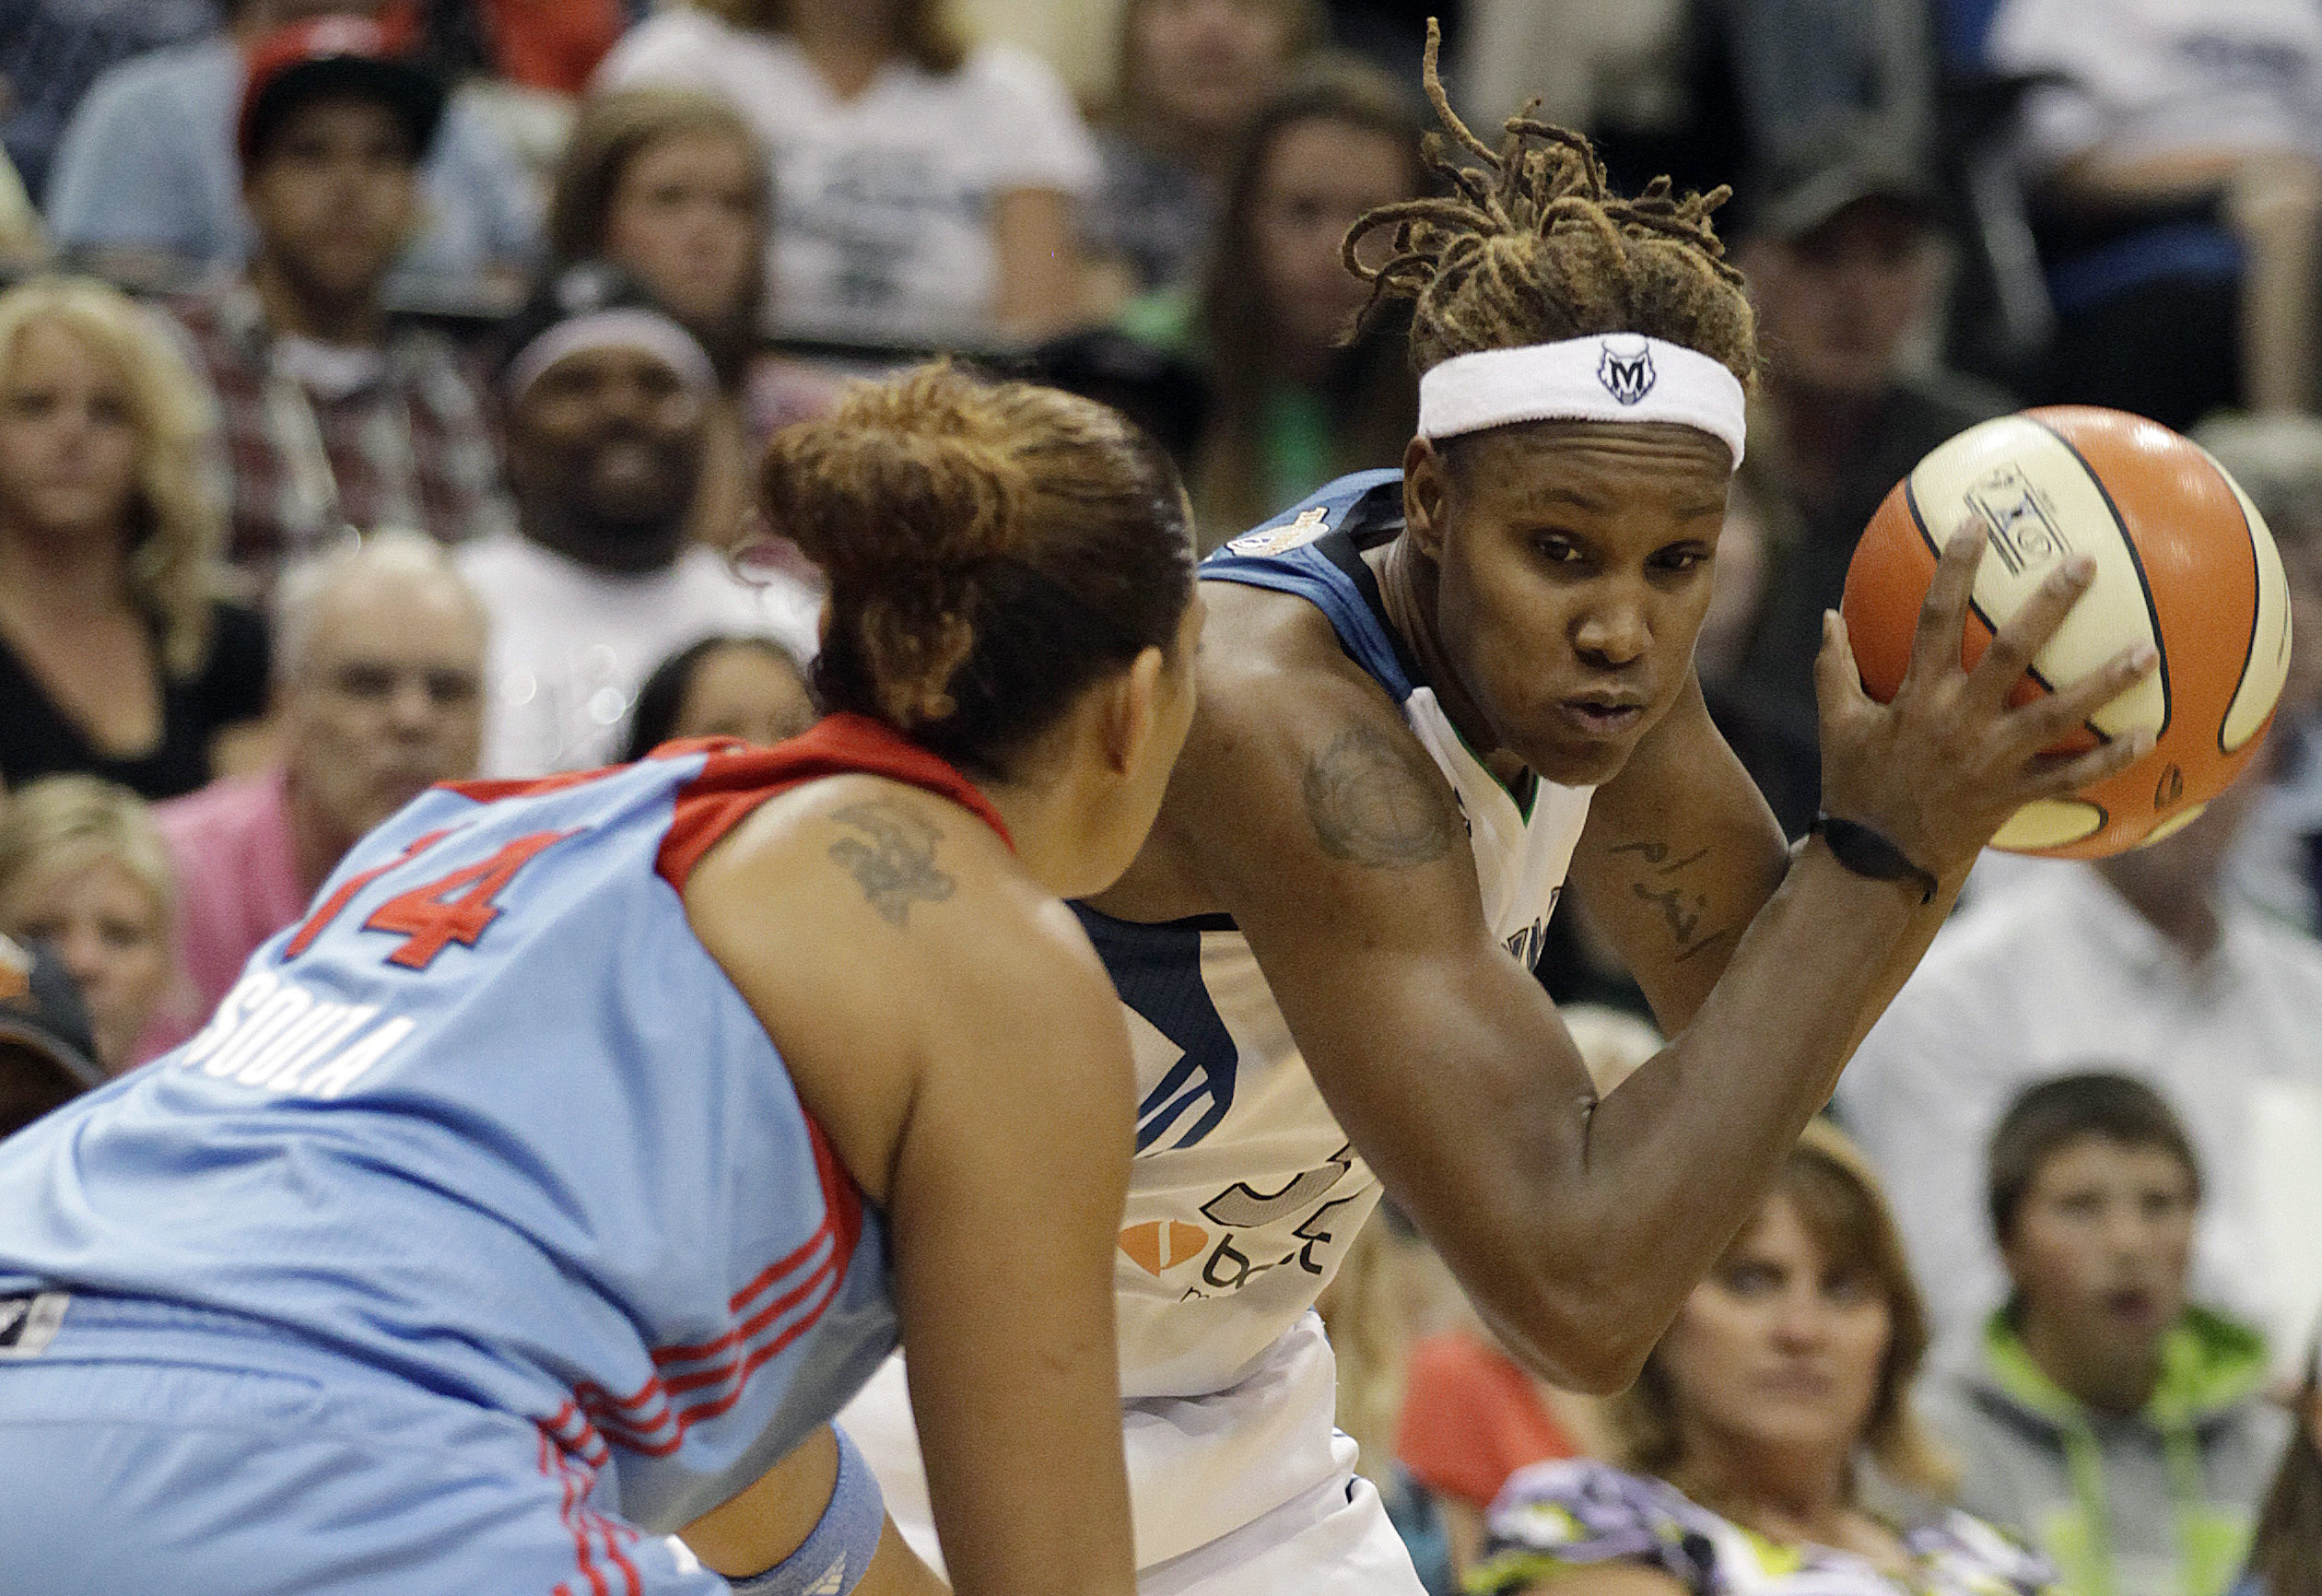 Minnesota Lynx forward Rebekkah Brunson, right, protects the ball against Atlanta Dream forward Erika de Souza (14) in the second half of Game 2 of the WNBA Finals basketball series, Wednesday, Oct. 5, 2011, in Minneapolis. The Lynx won 101-92. (AP Photo/Stacy Bengs